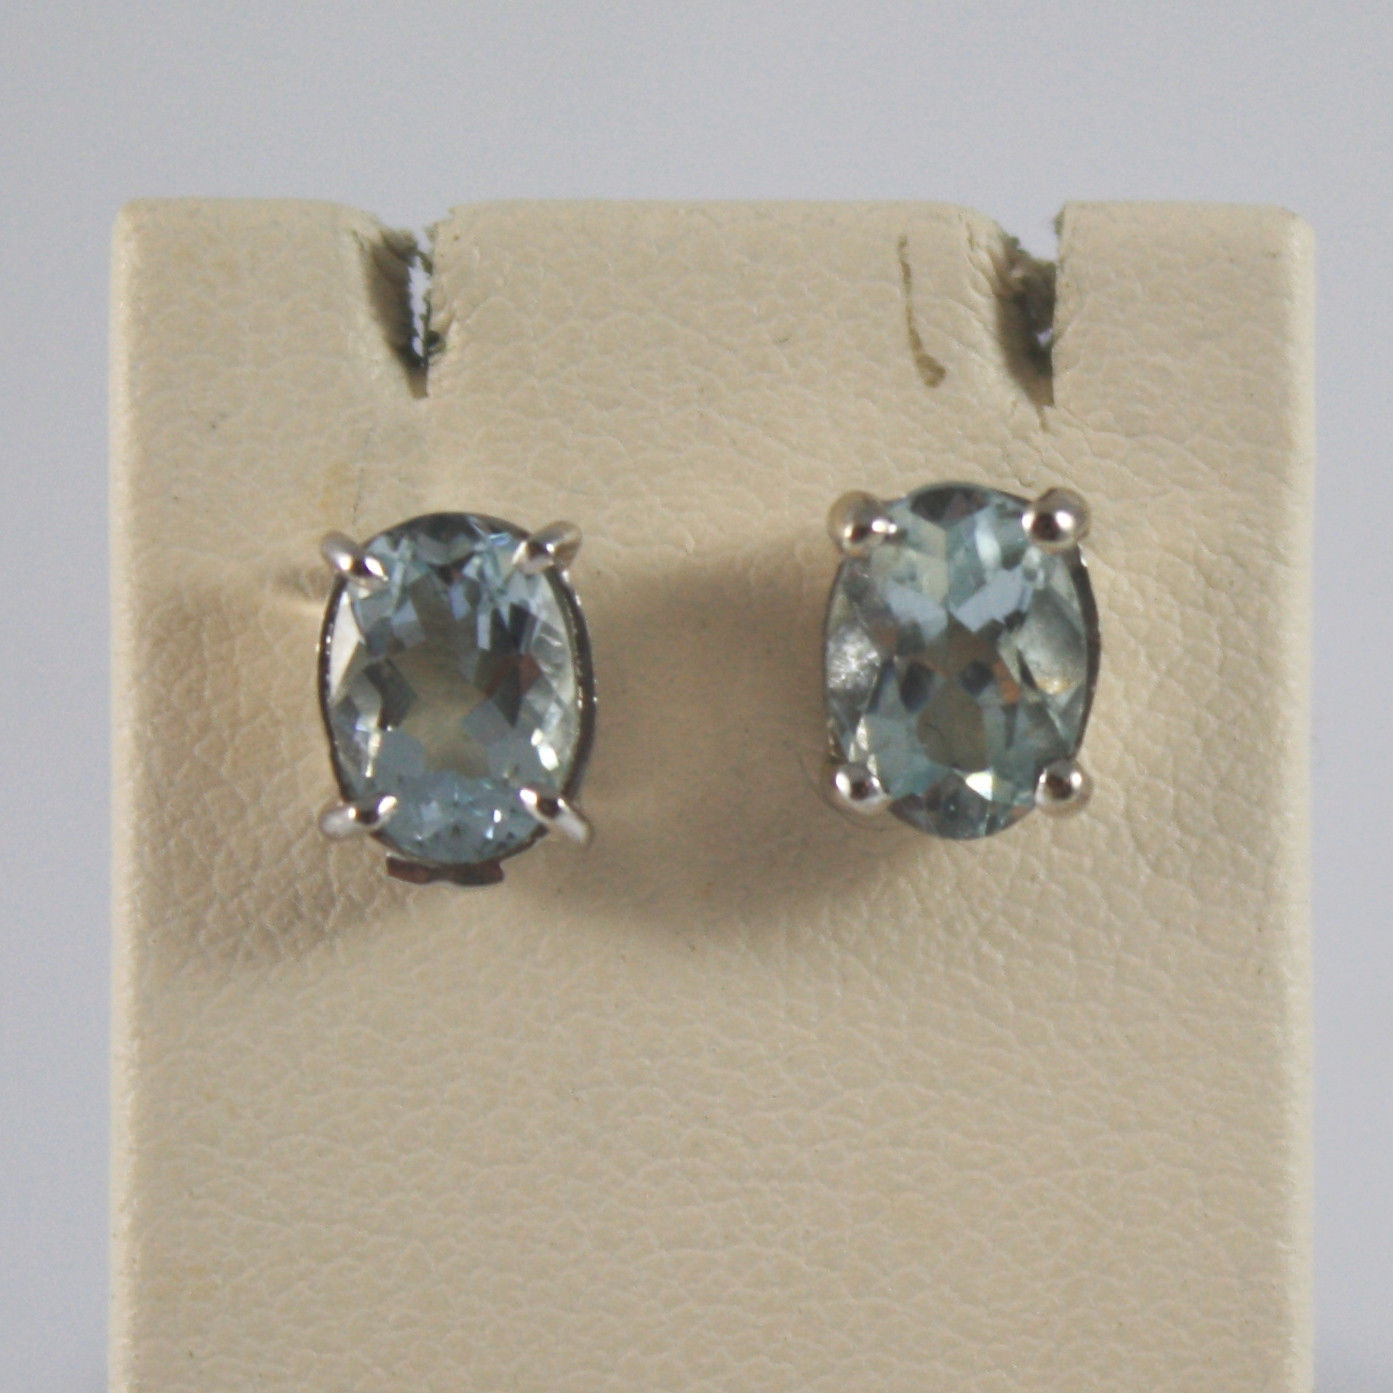 SOLID 18K WHITE GOLD EARRINGS, WITH AQUAMARINE, OVAL CUT, 1.40 CARATS